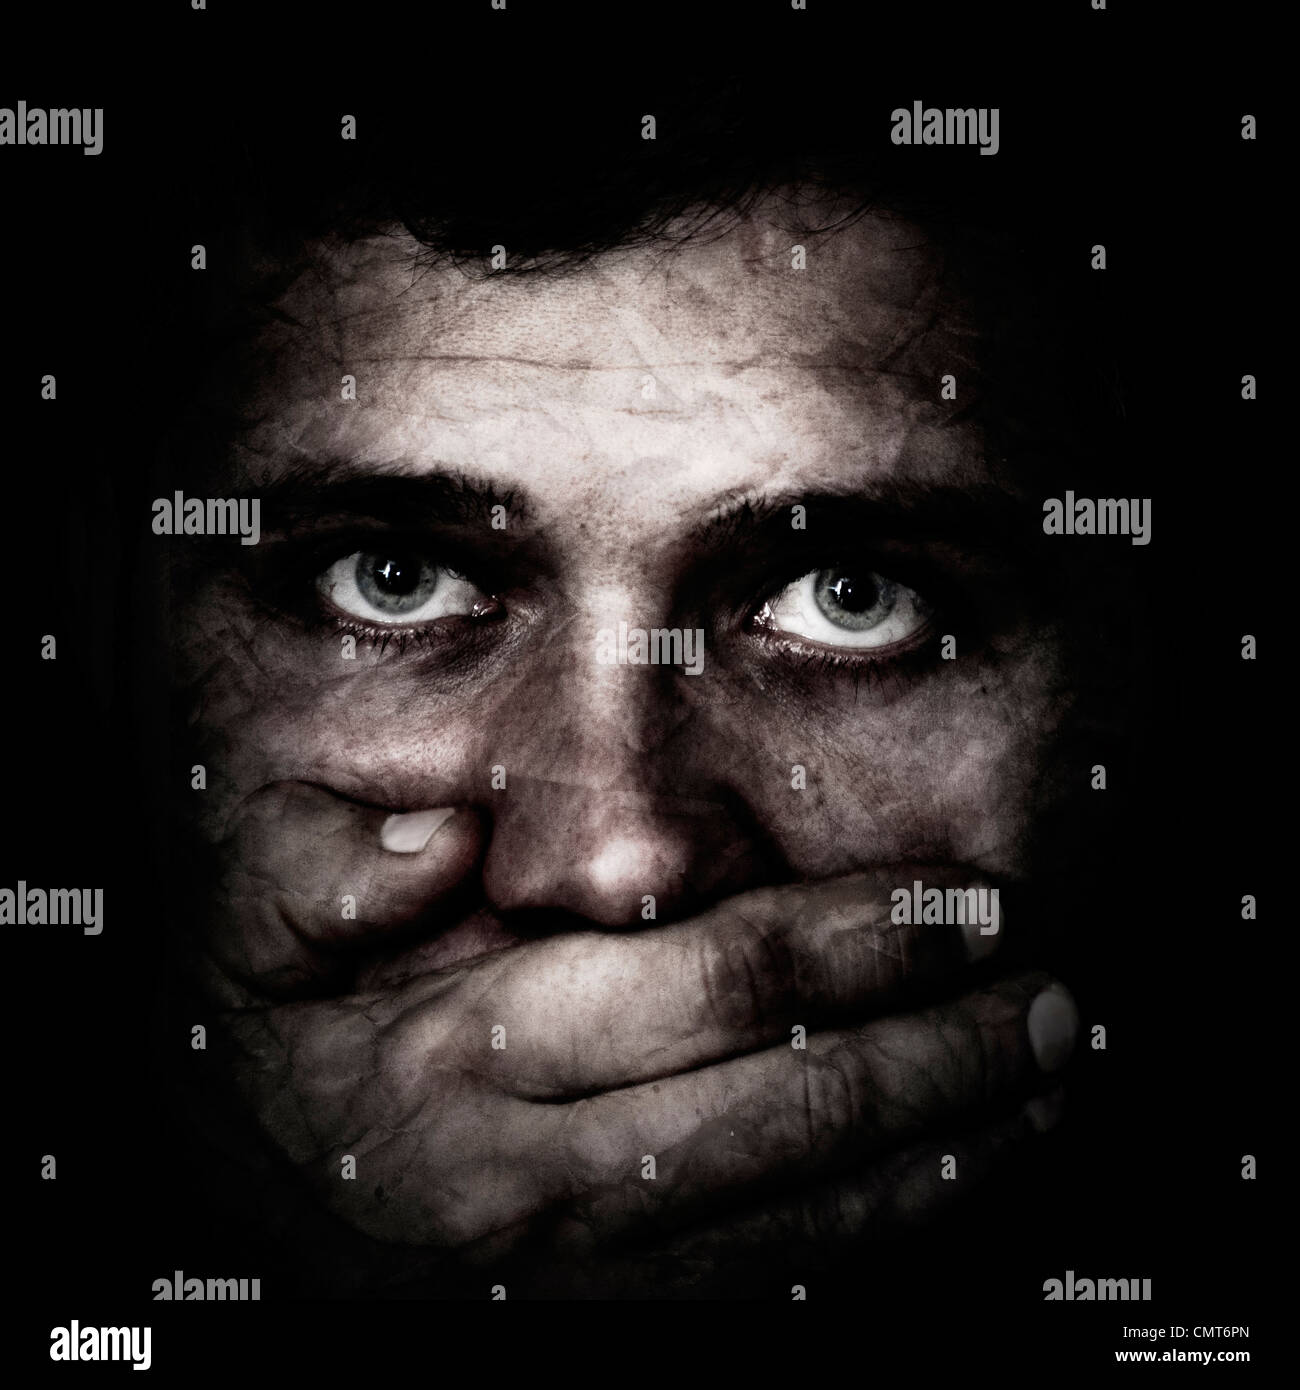 Concept about the Human Trafficking - Stock Image